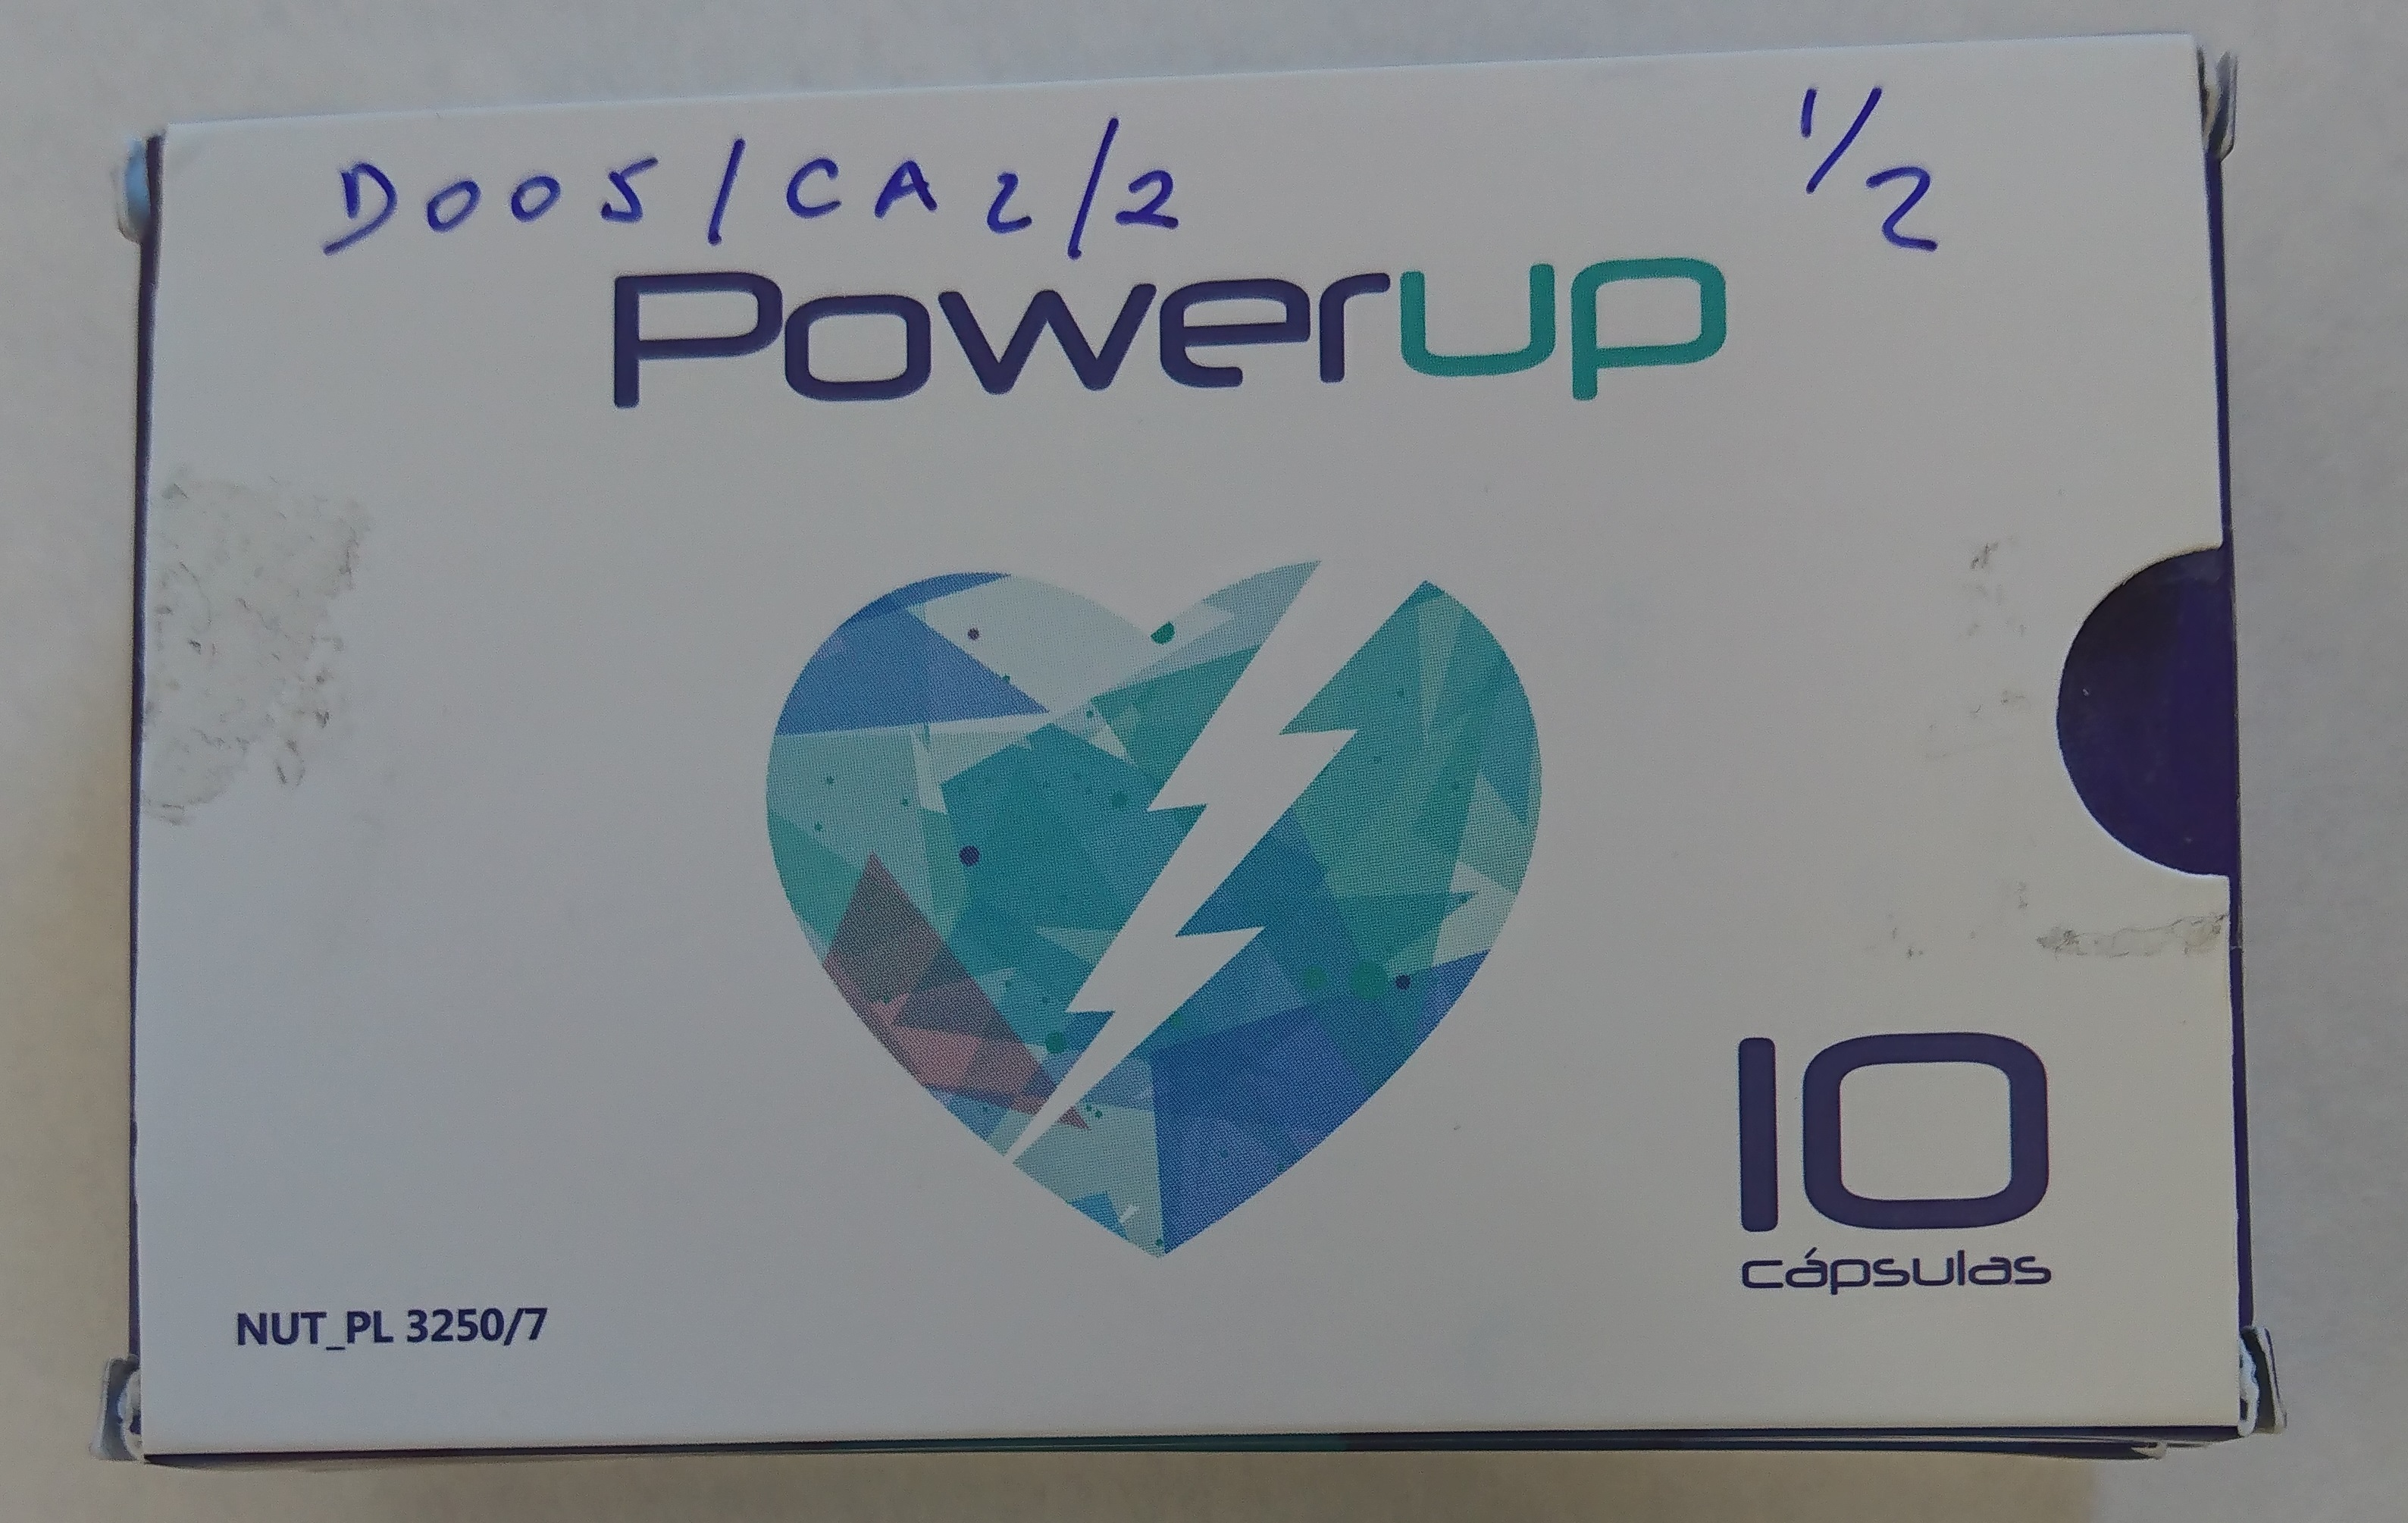 Image of the illigal product: PowerUp